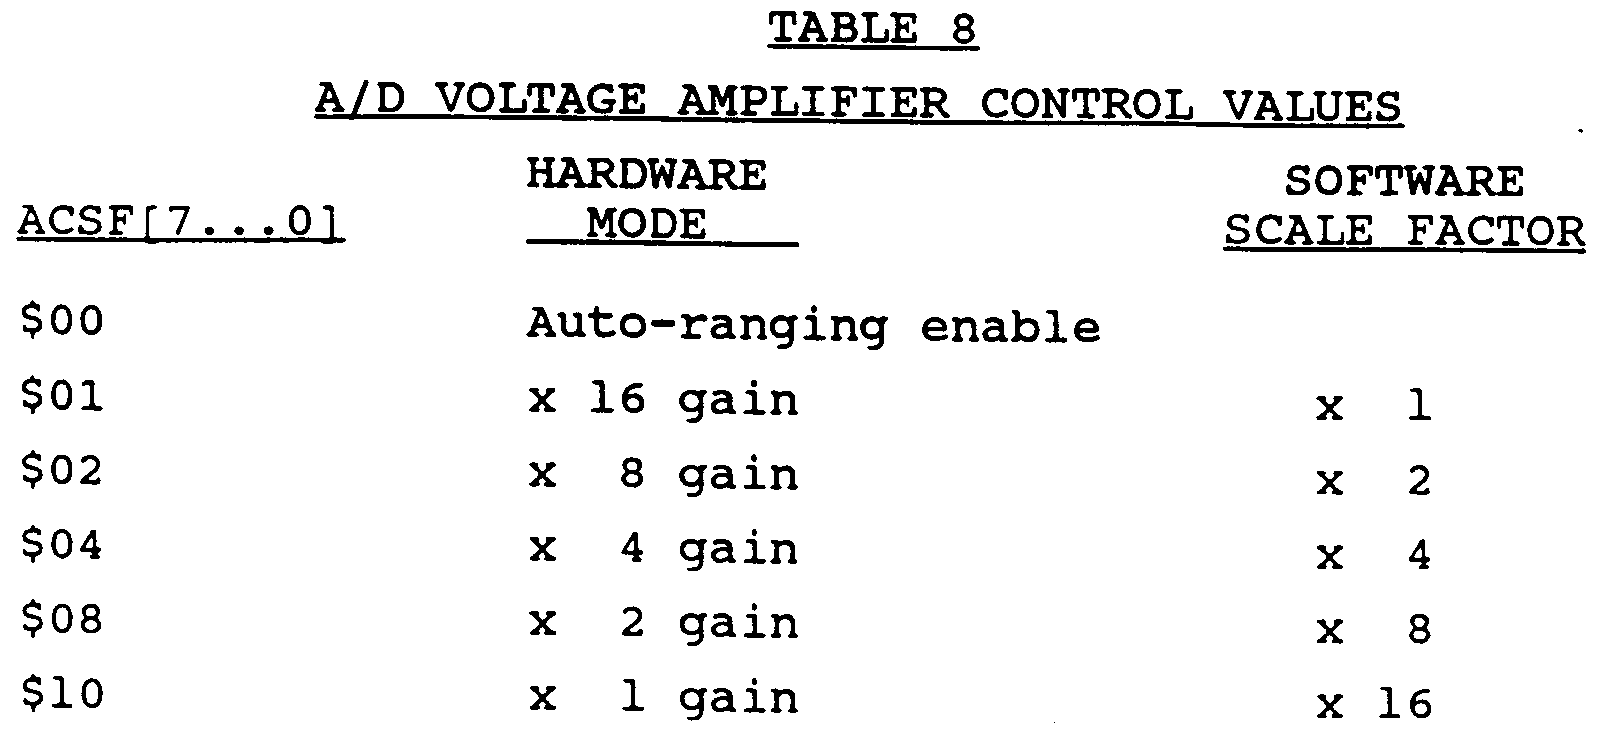 Ep0493003a2 Voltage Regulator Power Supply And Calibrator Form The Divider That Scales Down Adapter Ac Figure Imgb0015